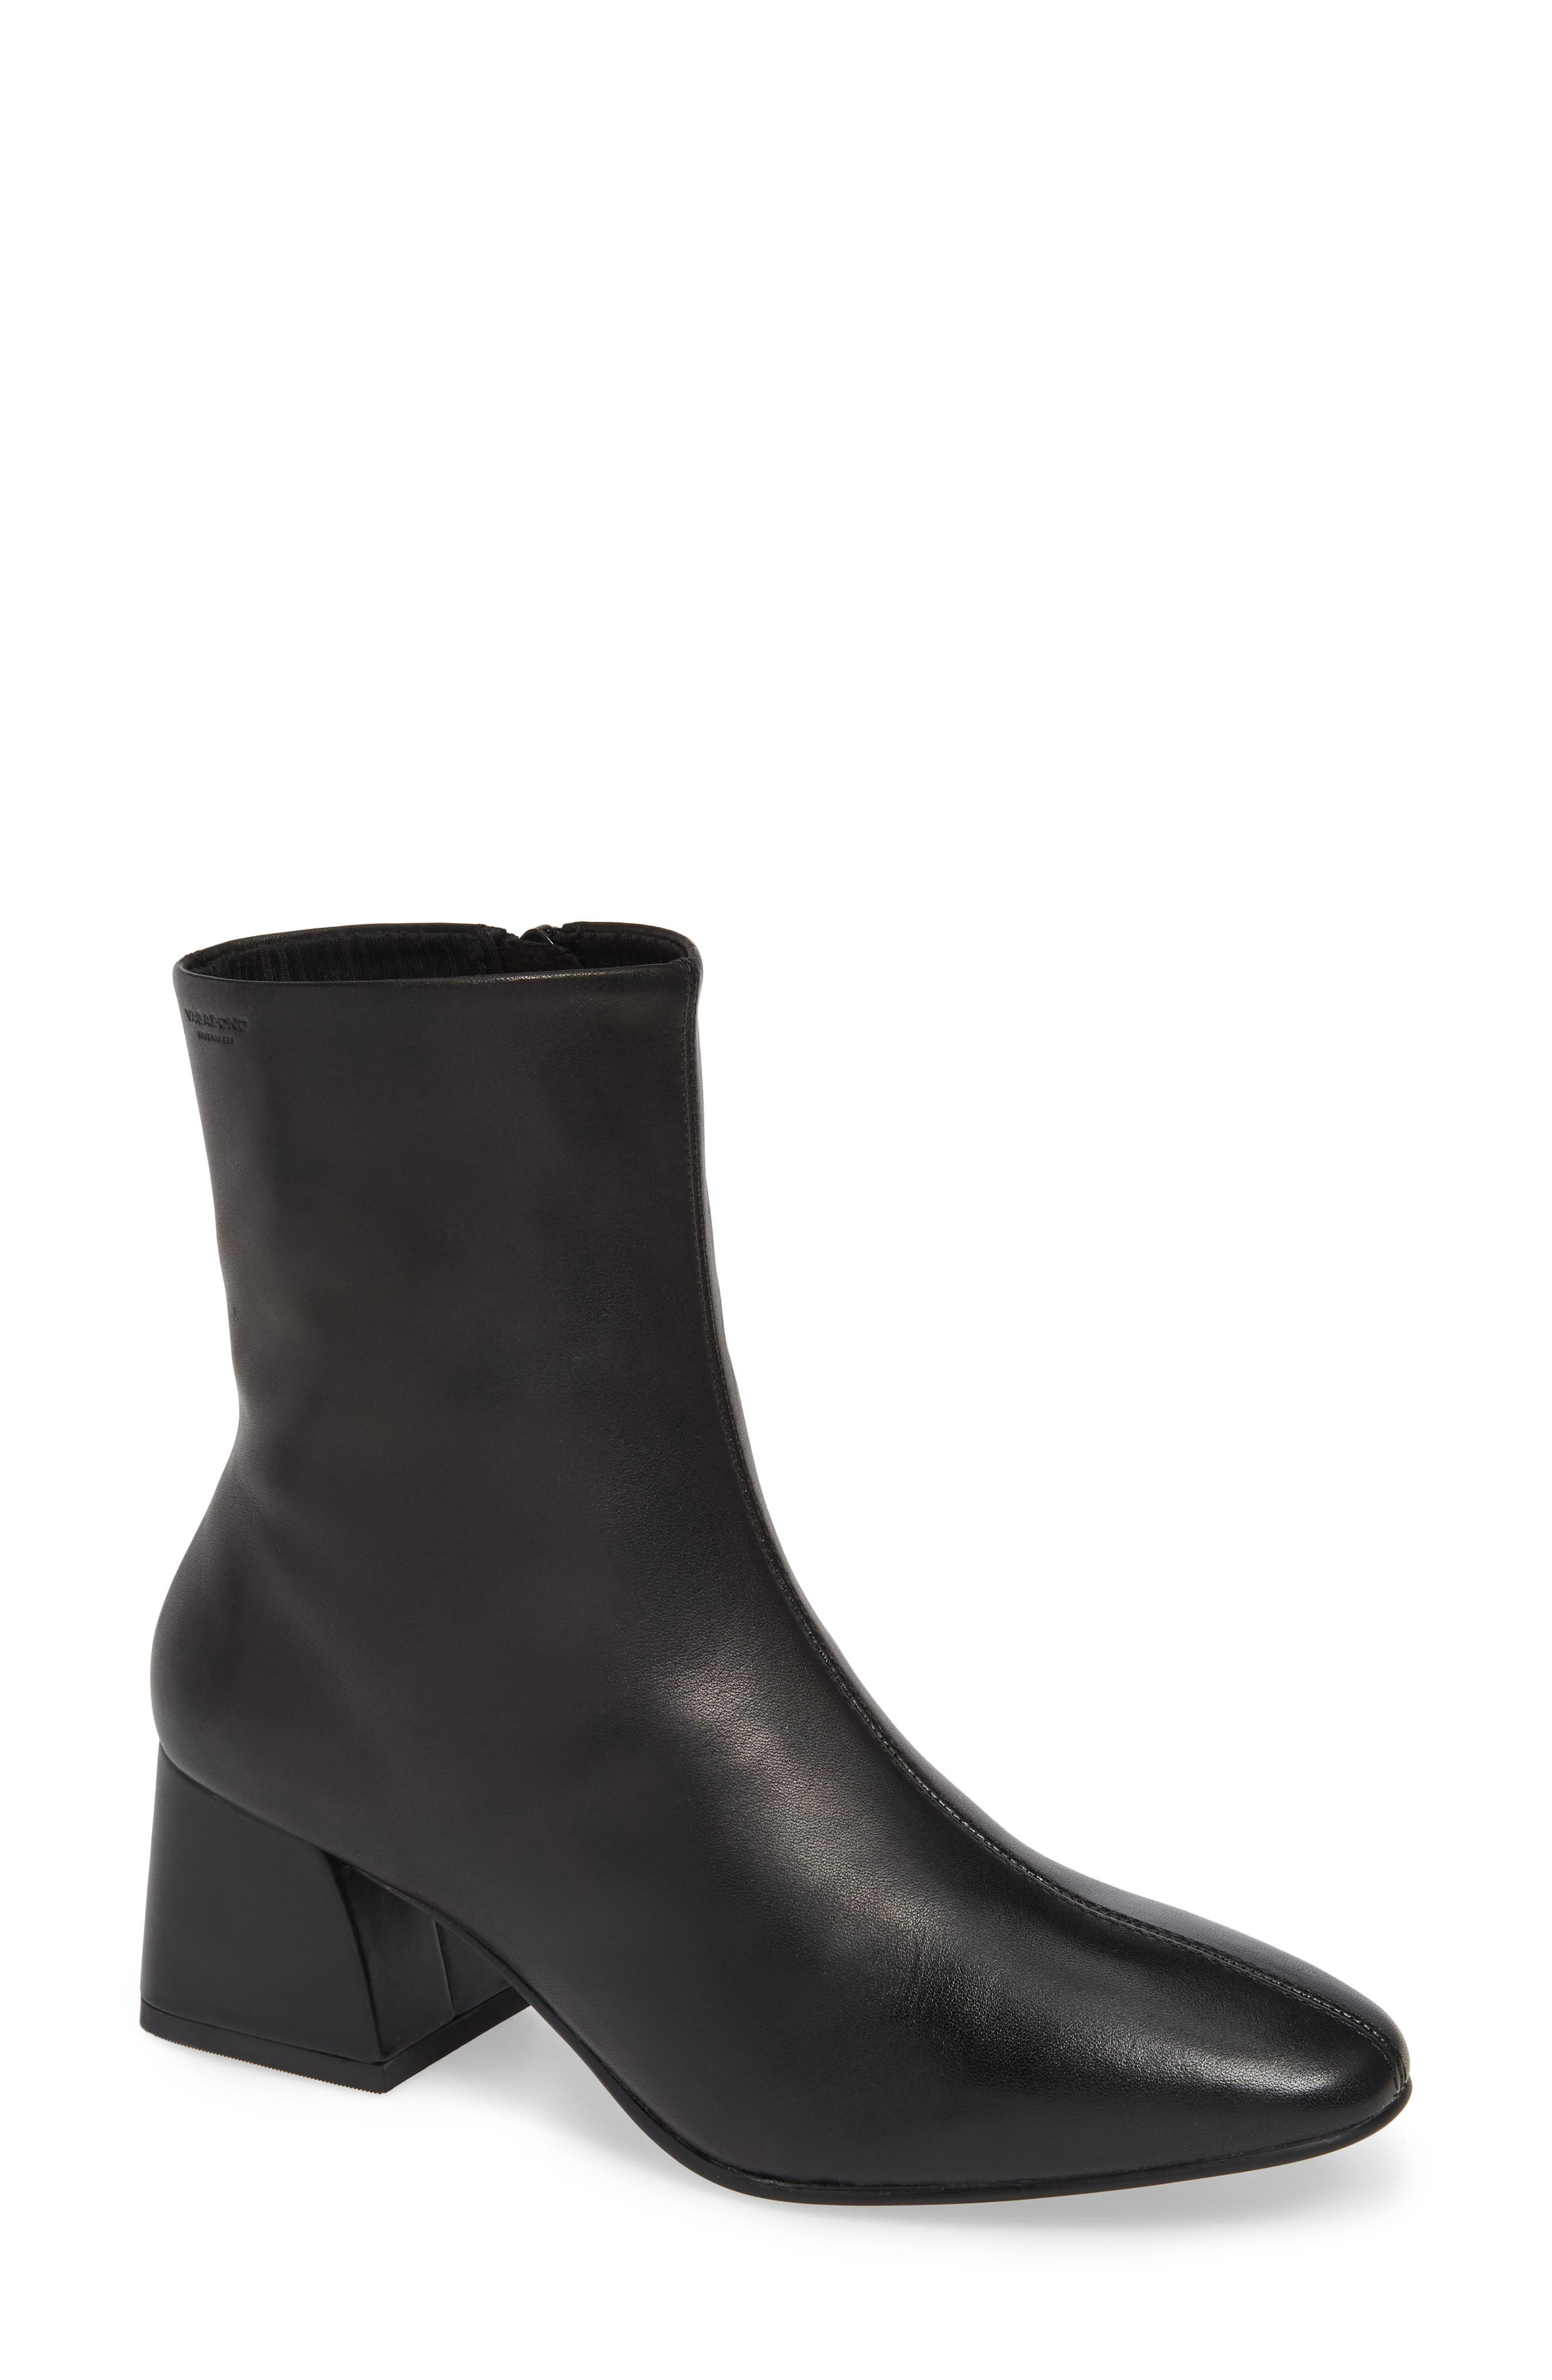 Shoemakers Alice Bootie,                             Main thumbnail 1, color,                             BLACK LEATHER